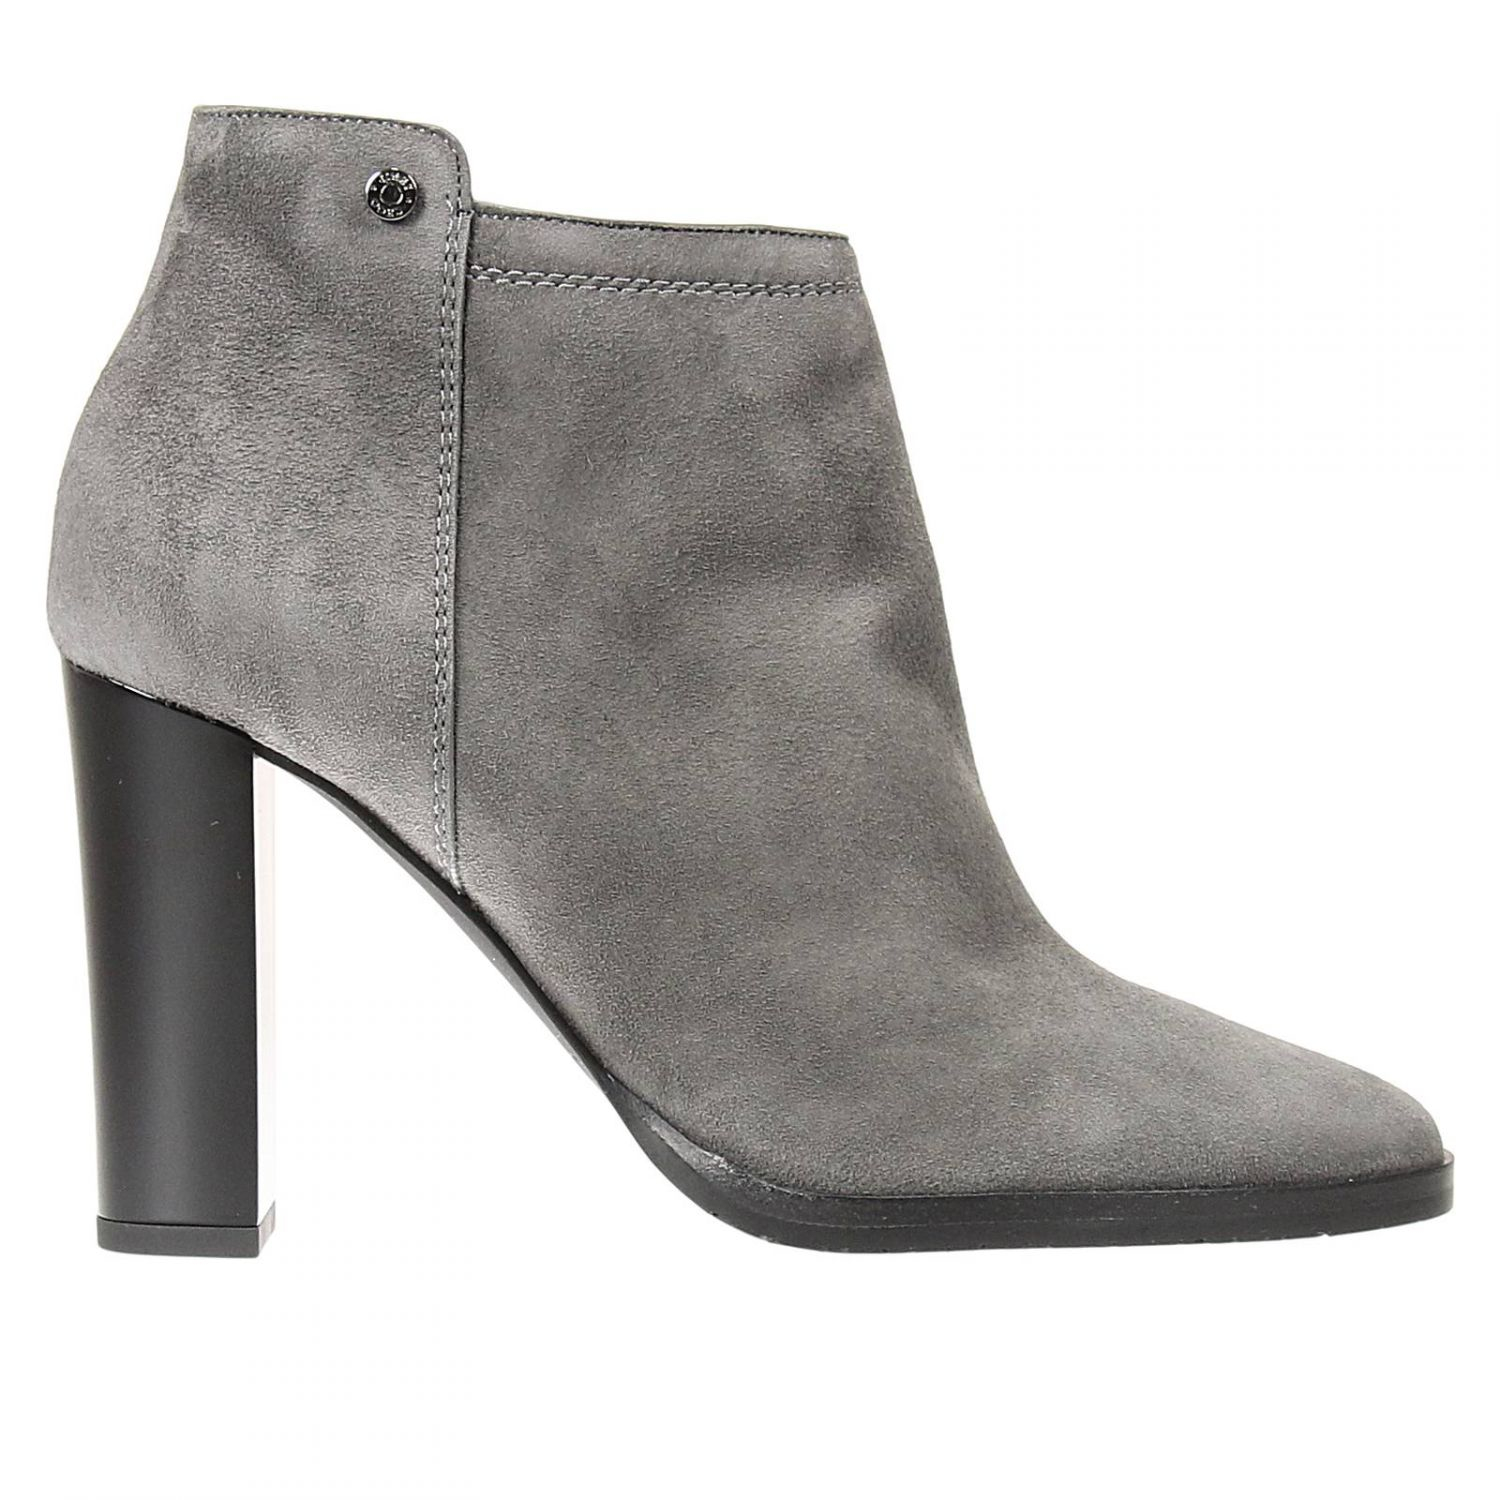 jimmy choo ankle boots in gray grey save 51 lyst. Black Bedroom Furniture Sets. Home Design Ideas